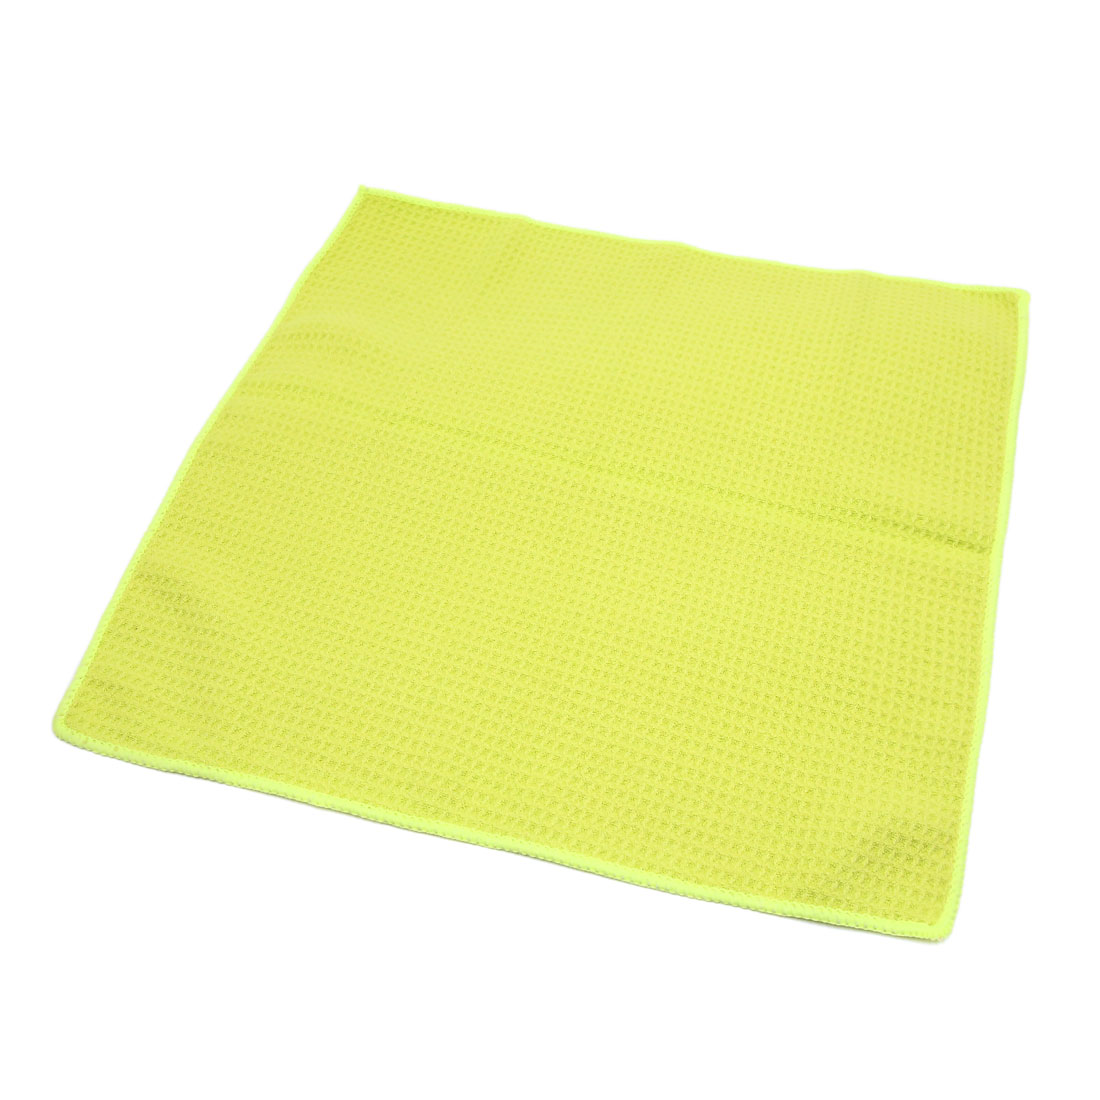 Light Green Soft Home Auto Car Care Dry Washing Polishing Duster Cloth Towels